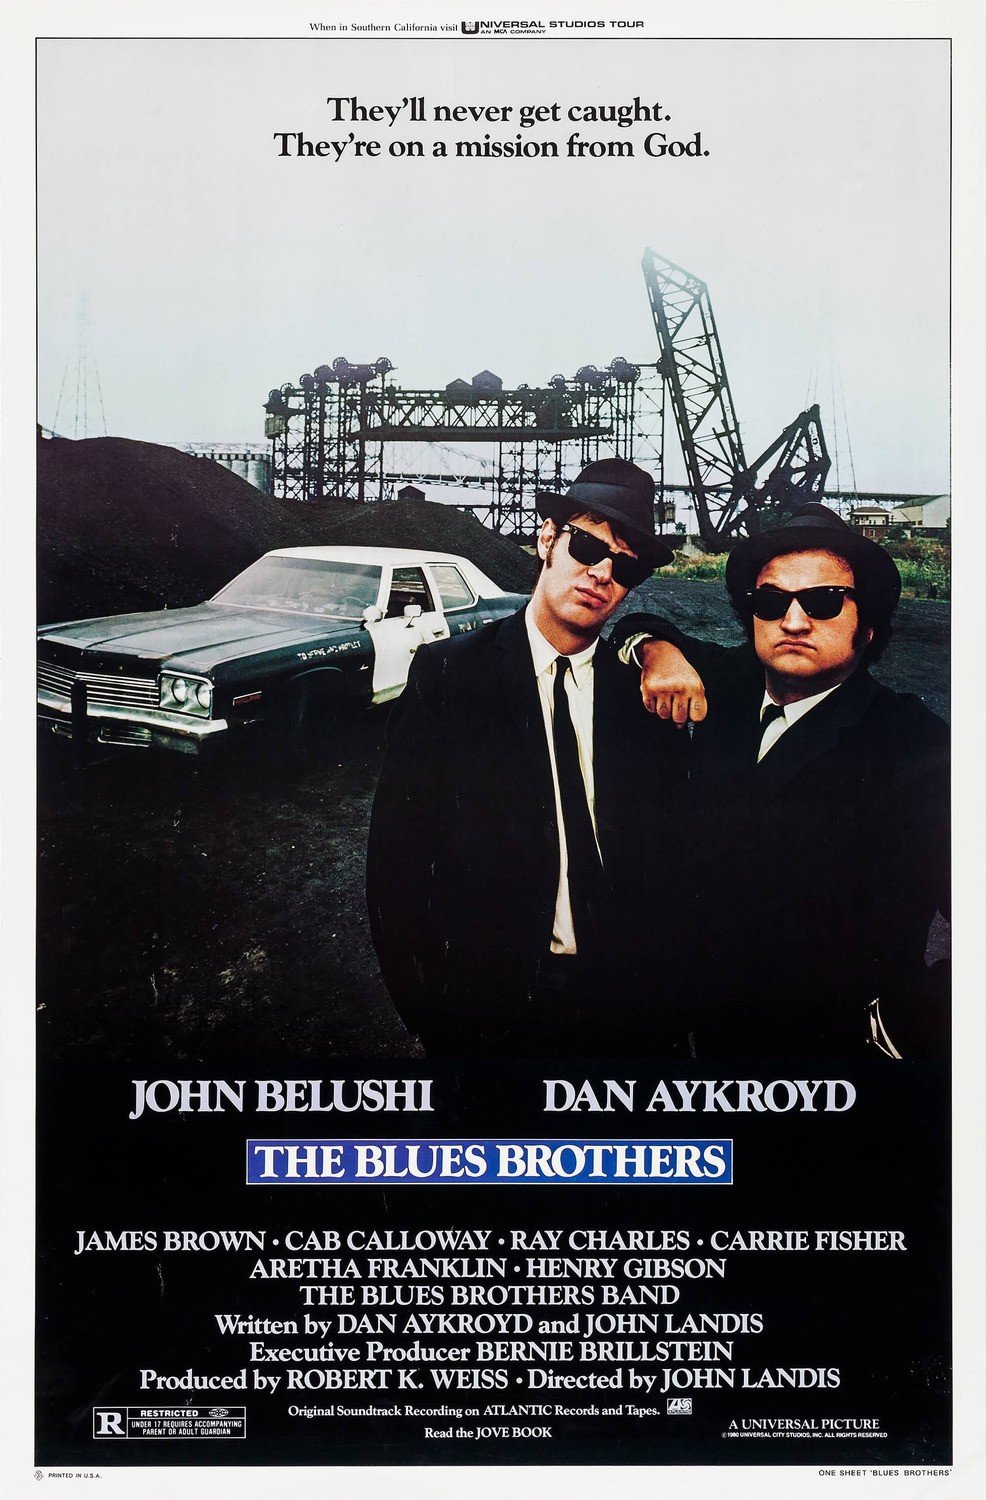 THE BLUES BROTHERS [Week Long Engagement]